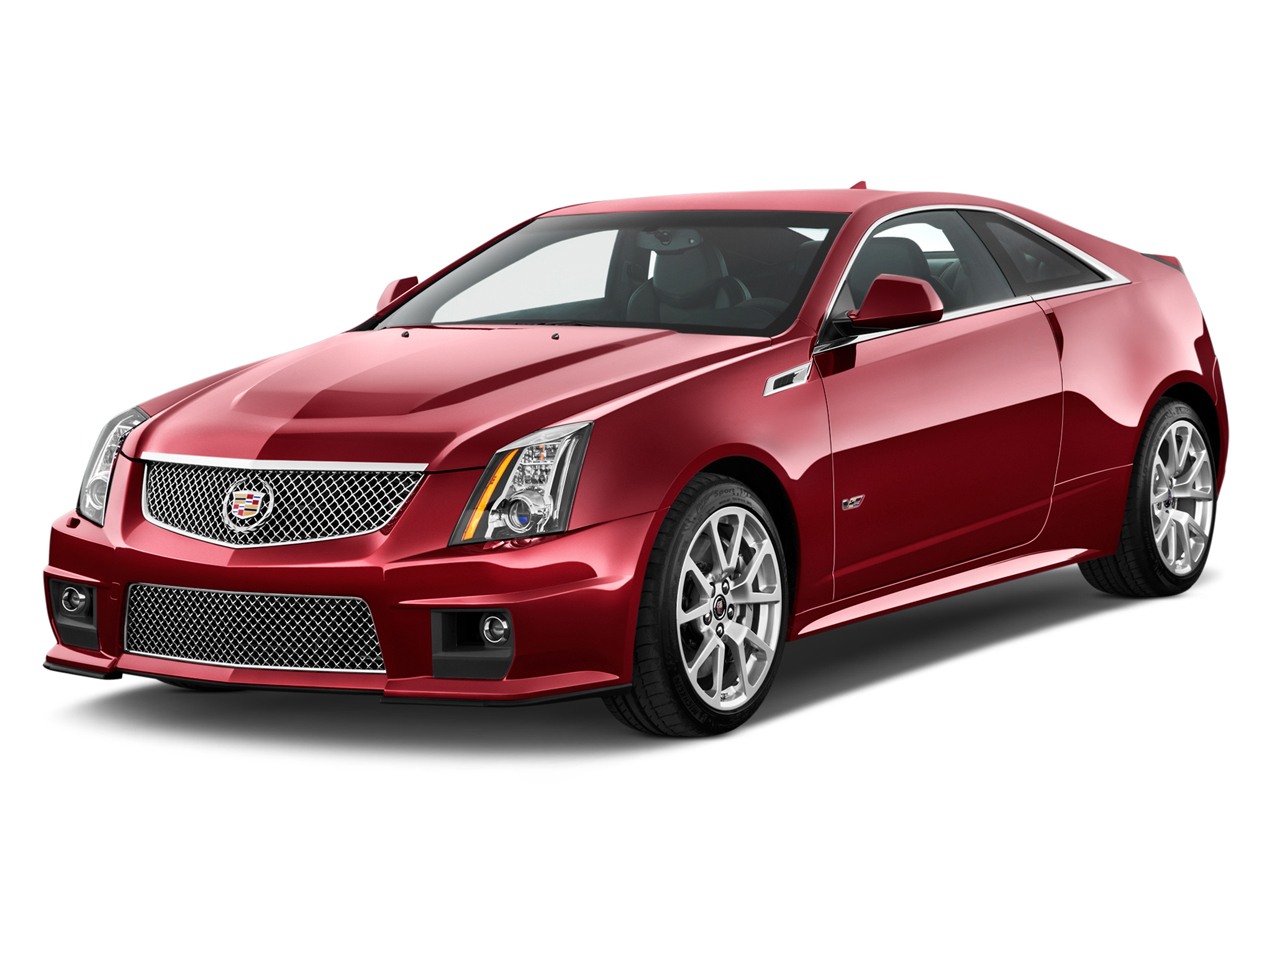 2015 Cadillac CTS-V Review, Ratings, Specs, Prices, and Photos - The Car Connection